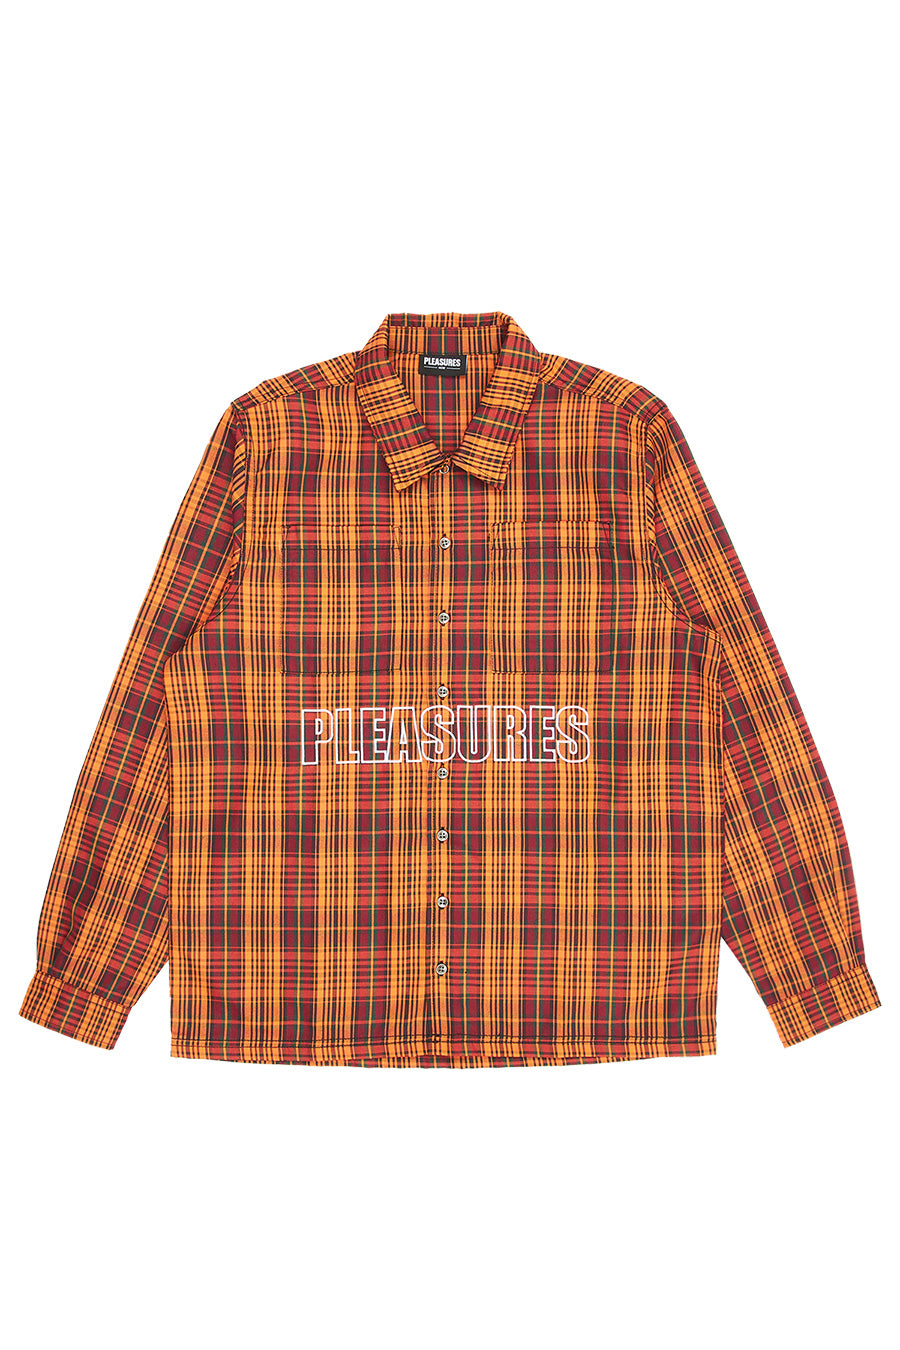 Pleasures - Orange Shade Plaid Work Shirt | 1032 SPACE